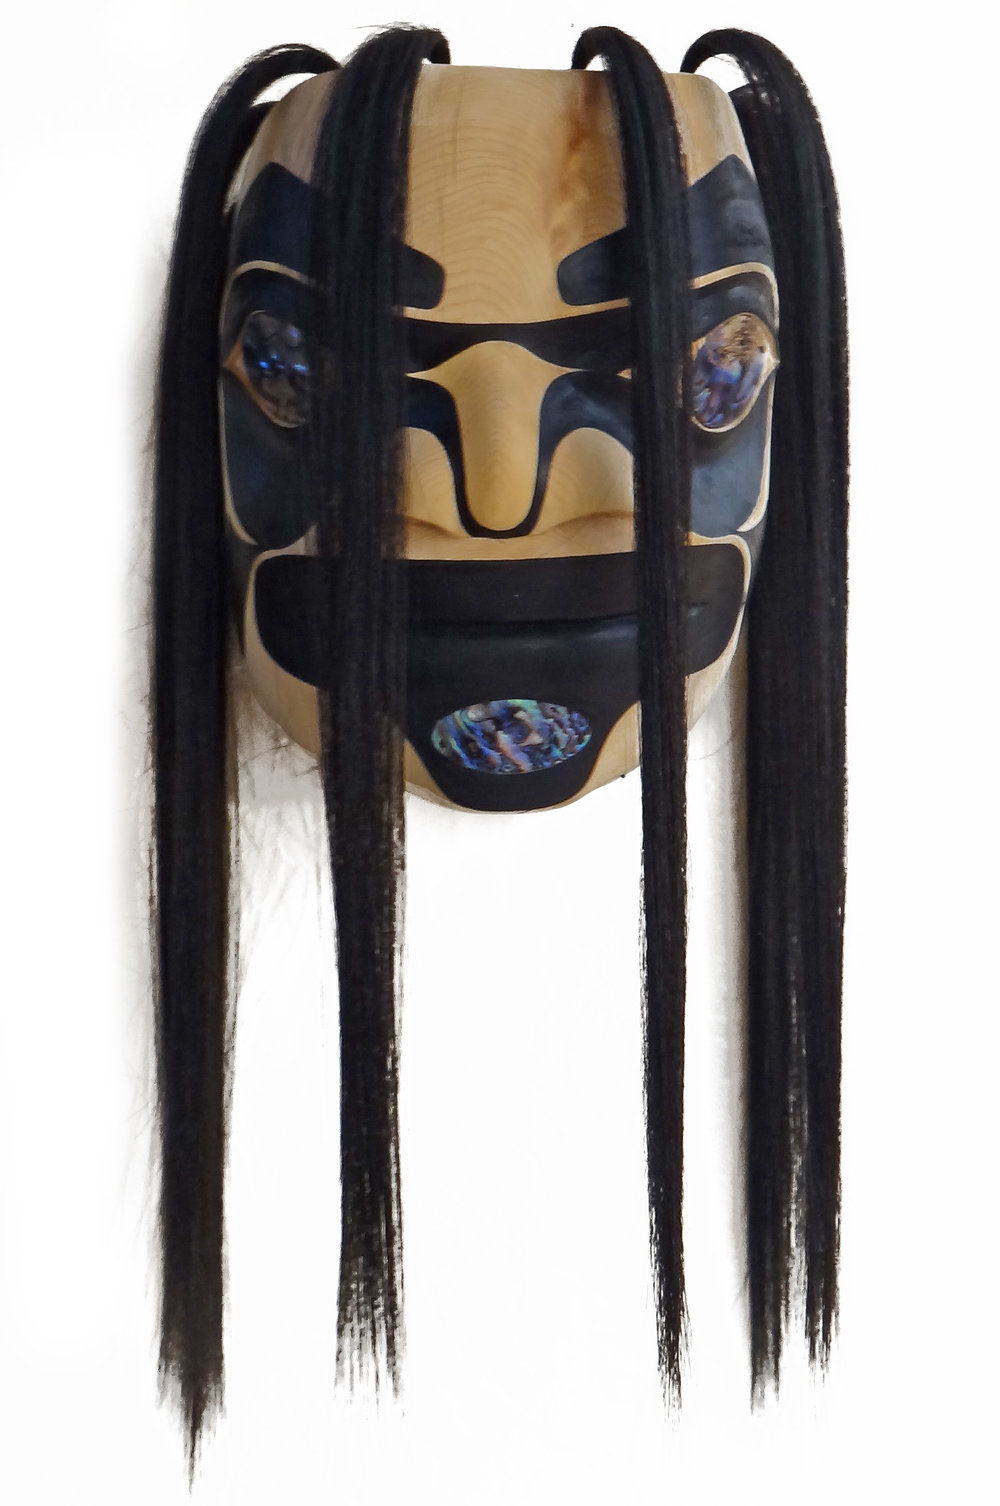 Raven Woman Mask by James Johnson